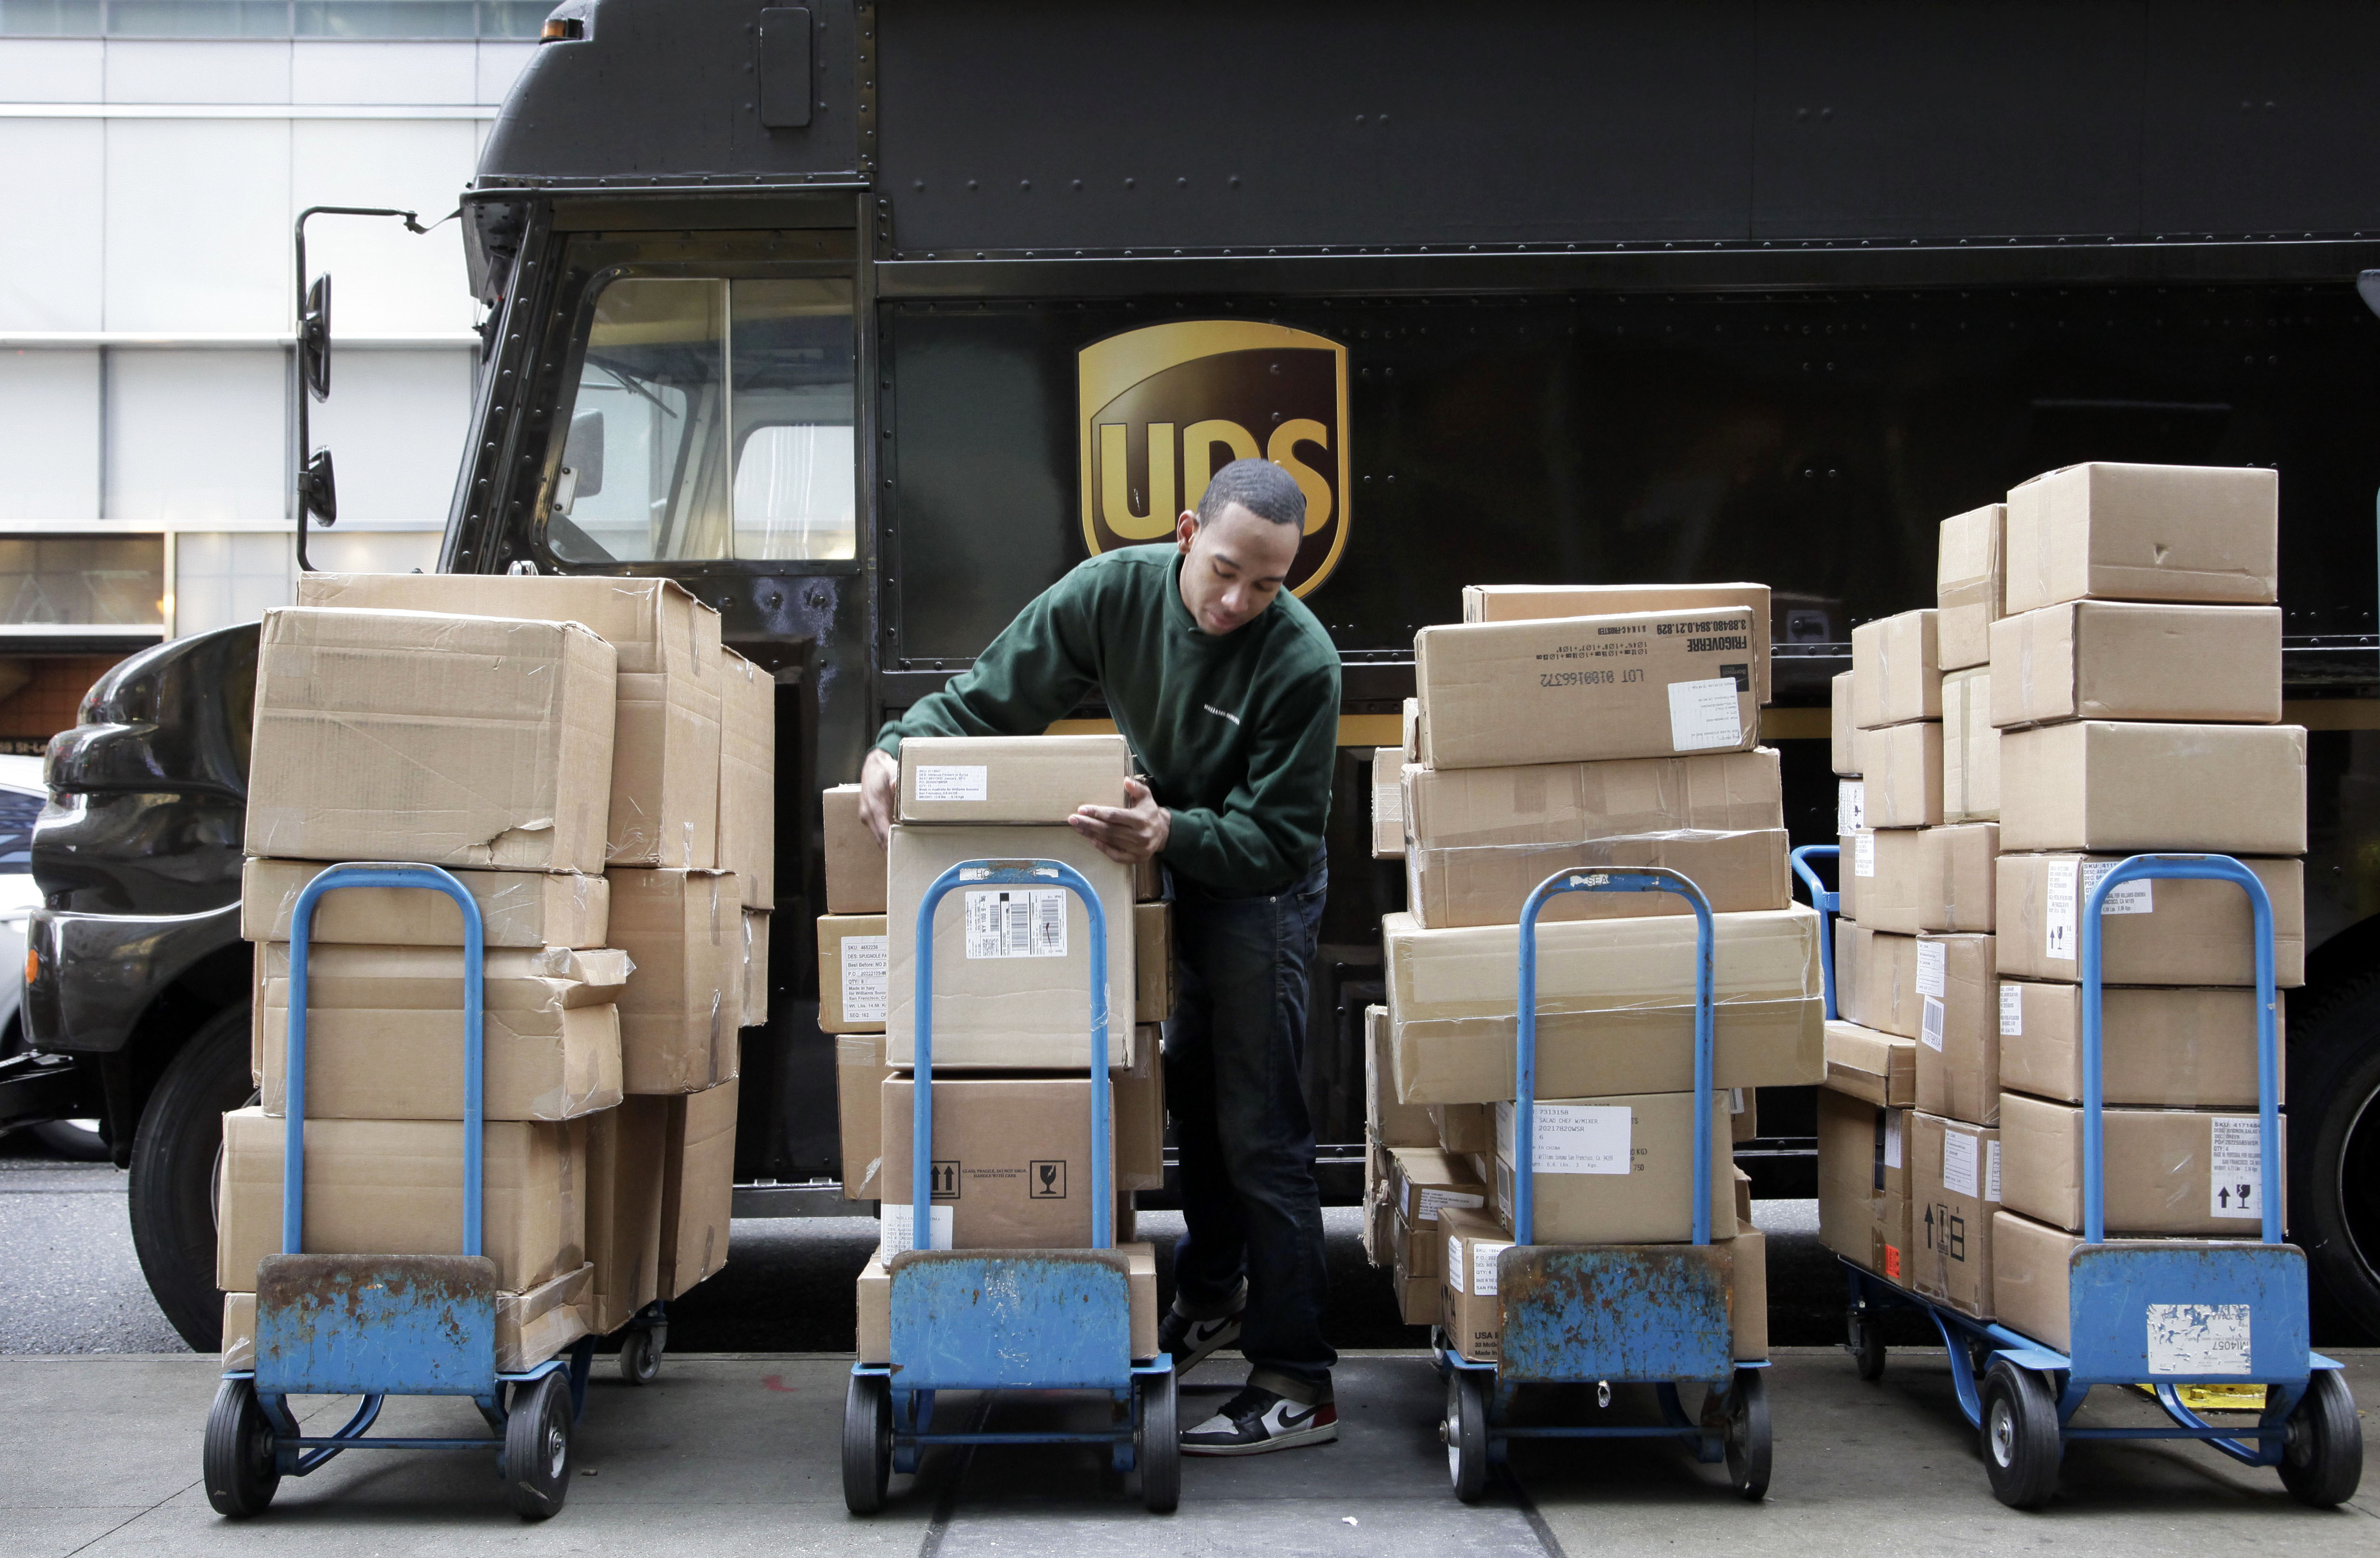 amazon refunds shipping as ups misses some christmas deliveries the blade - Amazon Christmas Delivery